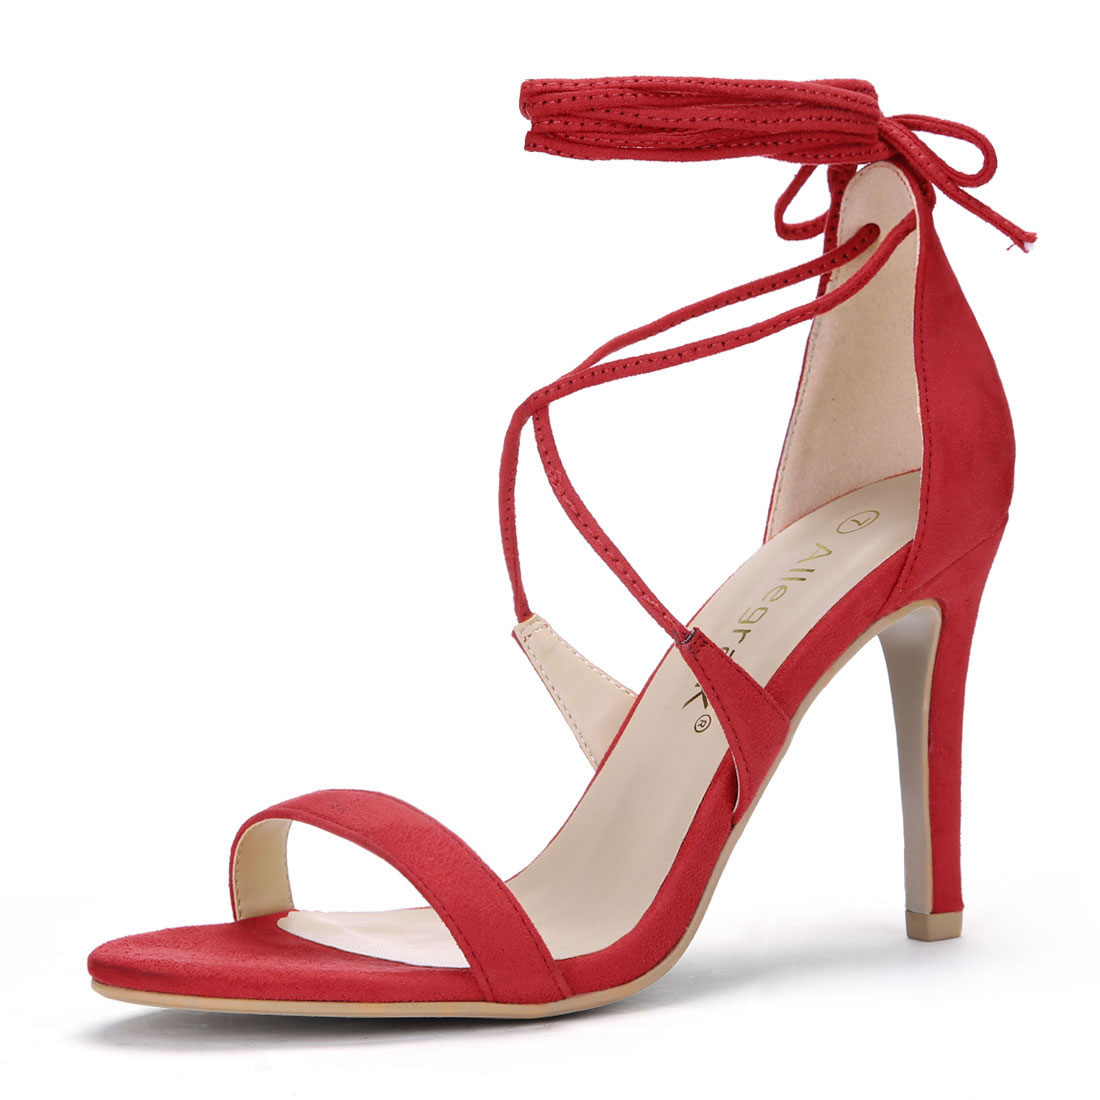 Women Open Toe Stiletto High Heel Lace-Up Sandals Red US 5